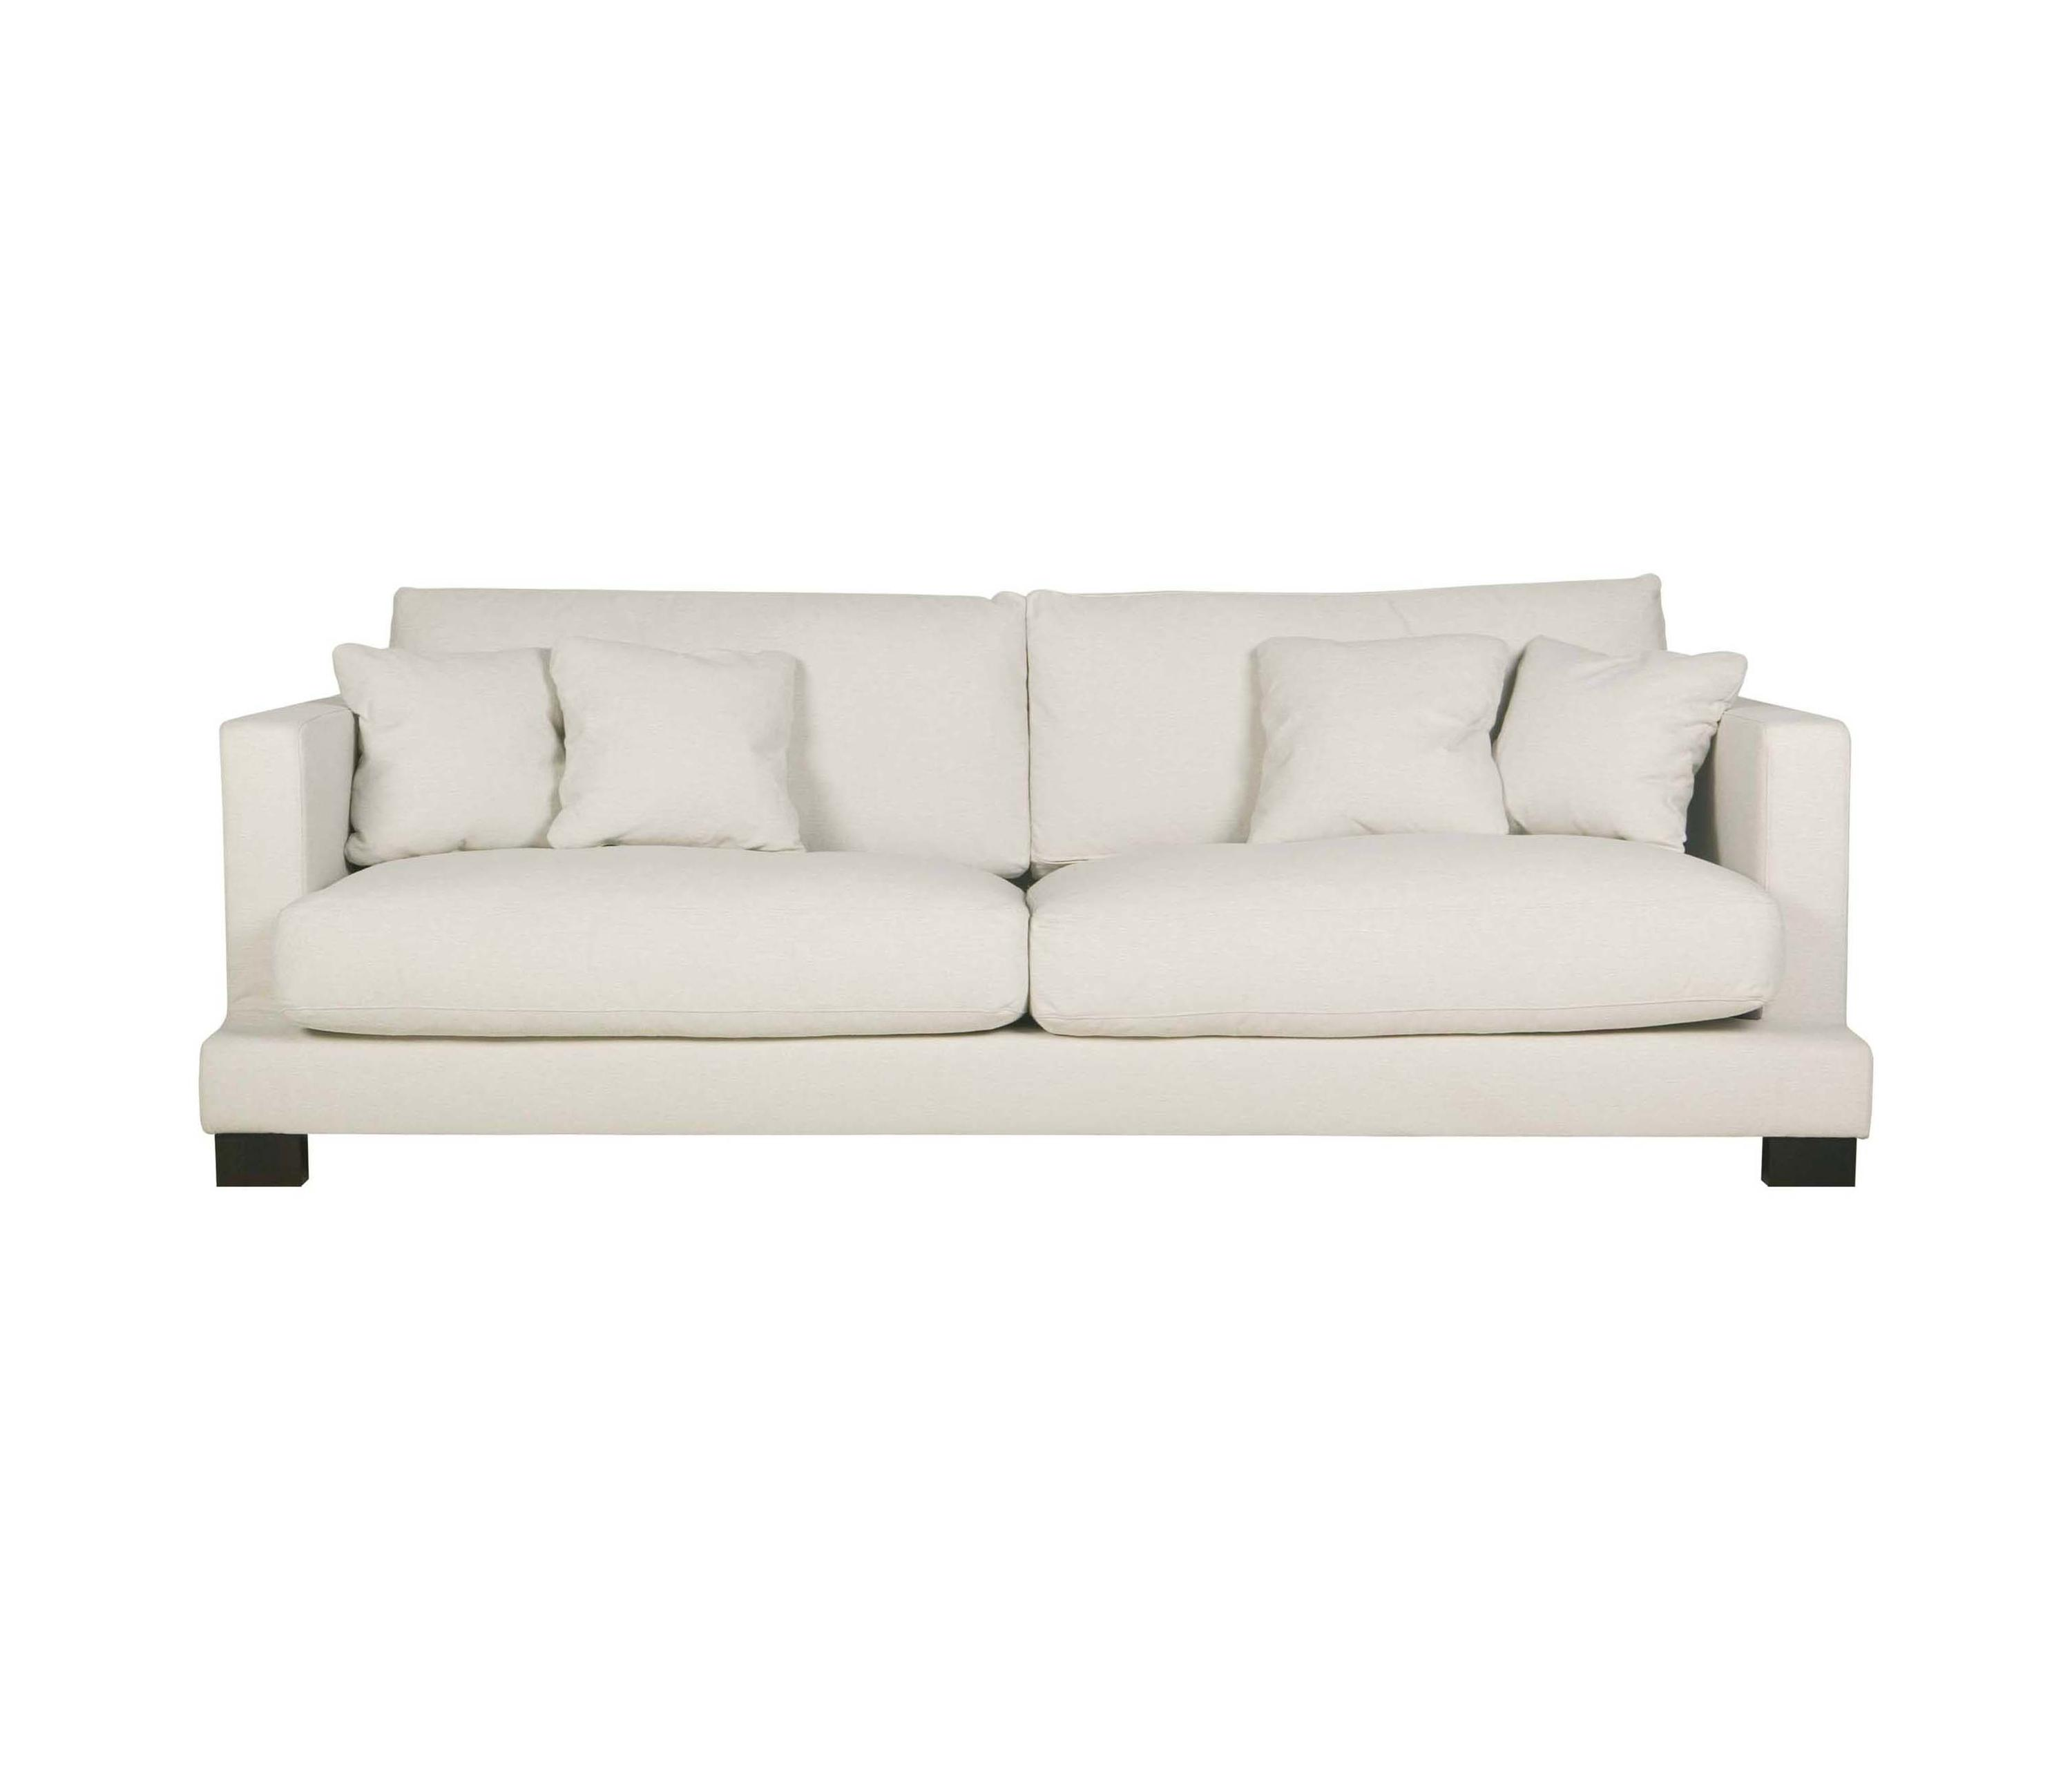 Ikea Köln Sofa Sits Products Collections And More Architonic